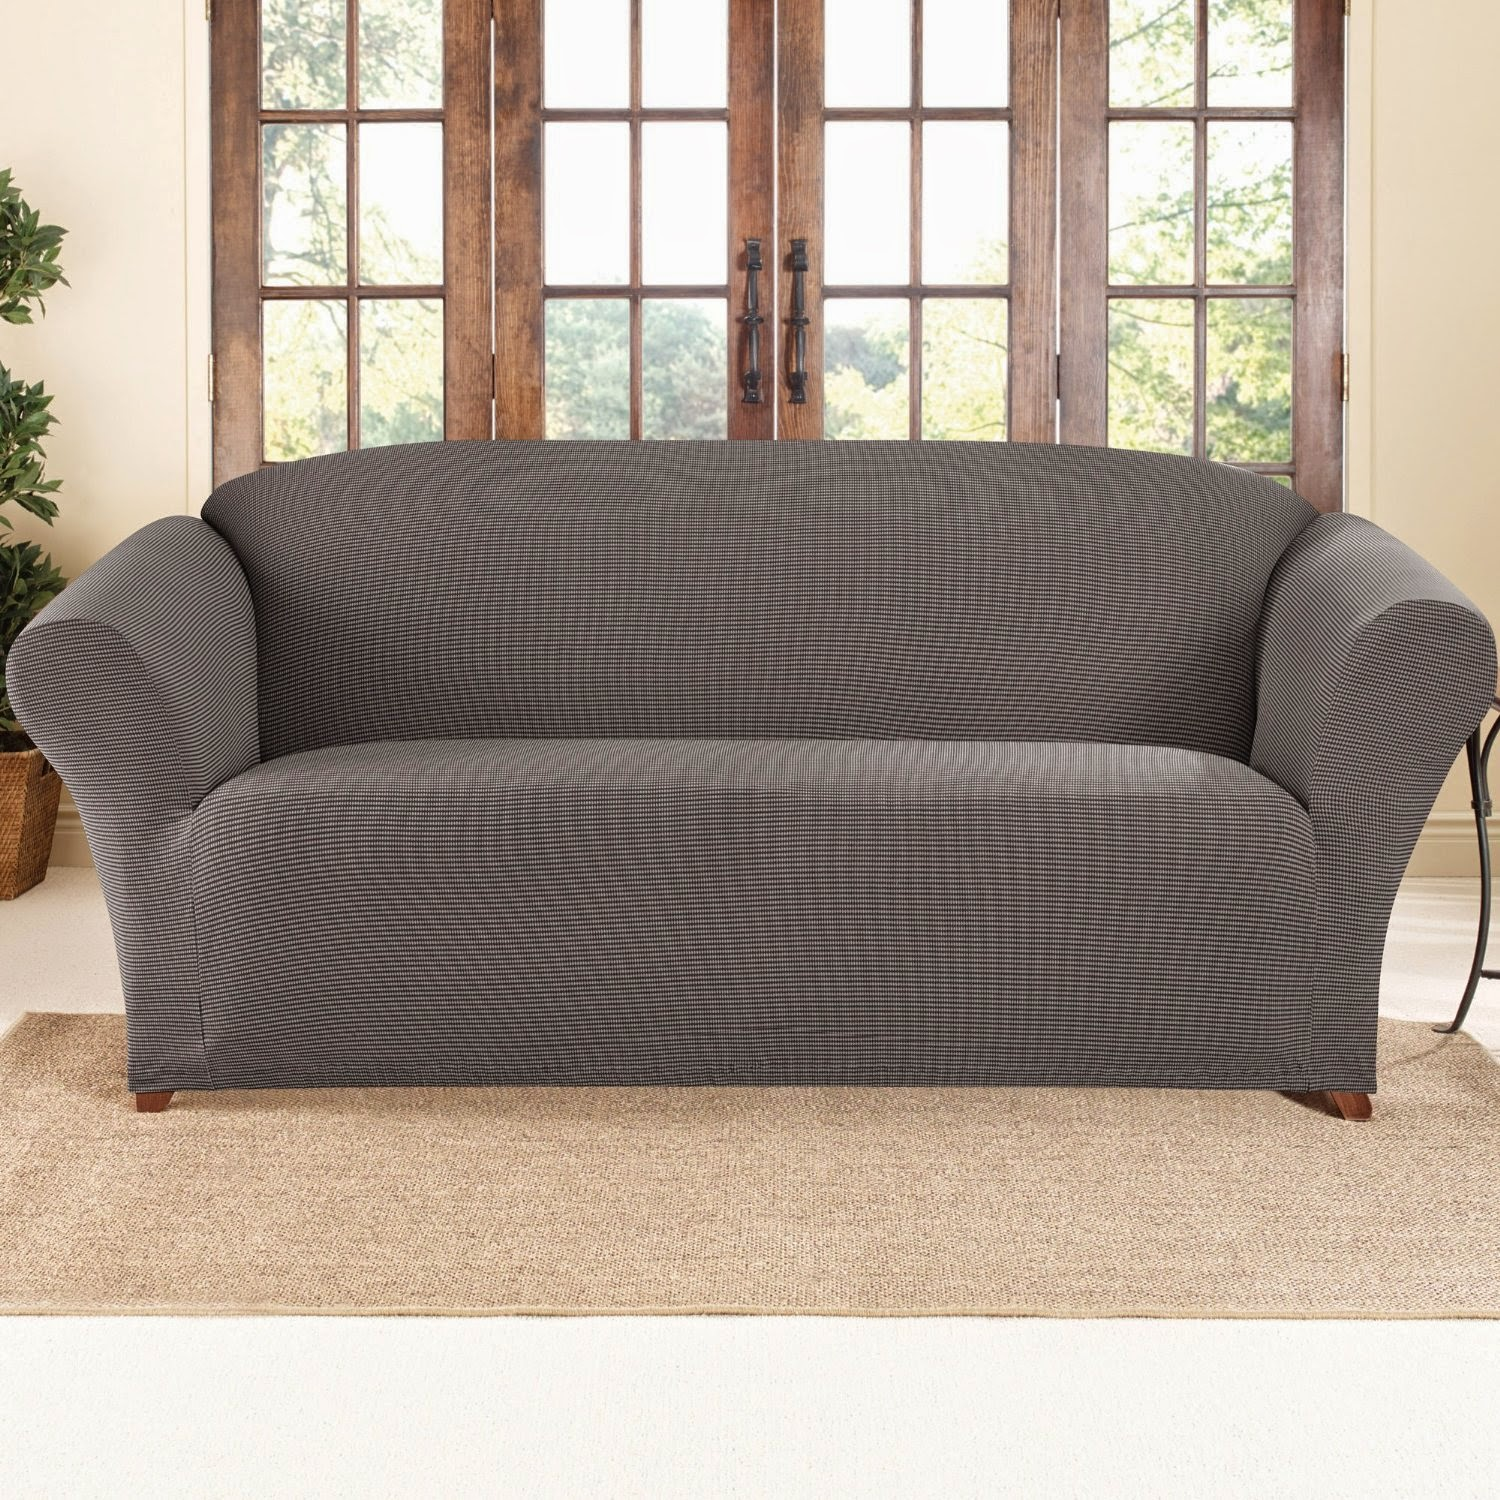 sofa recliner sale recliner sofa slipcovers walmart rh sofareclinersale blogspot com Slipcovers for Sofas with Cushions walmart sofa slipcover stretch